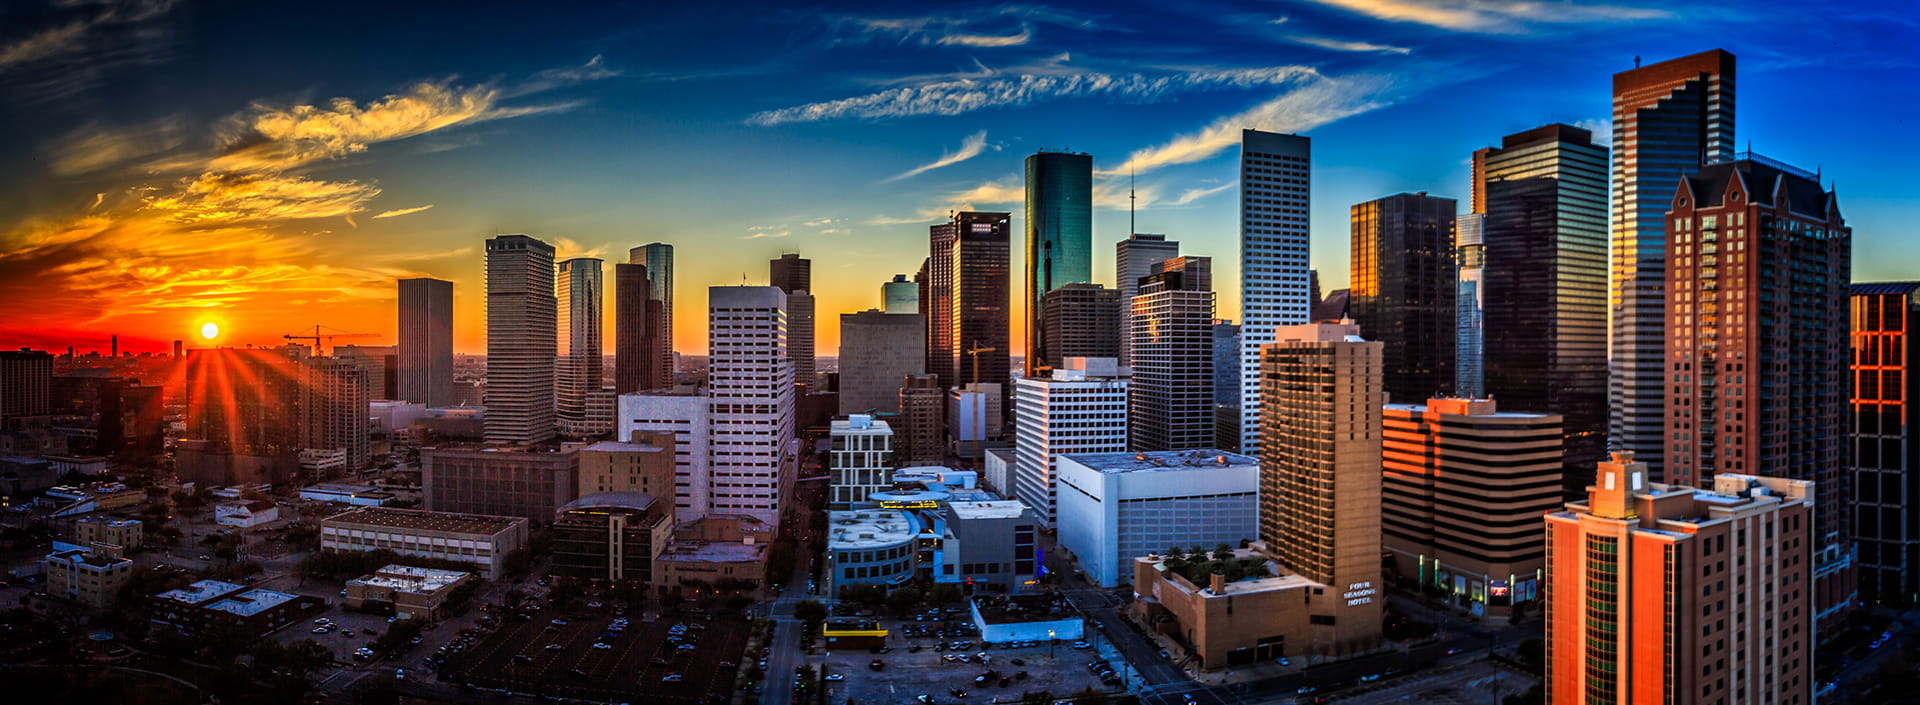 Aerial view of Houston Skyline at Sunset